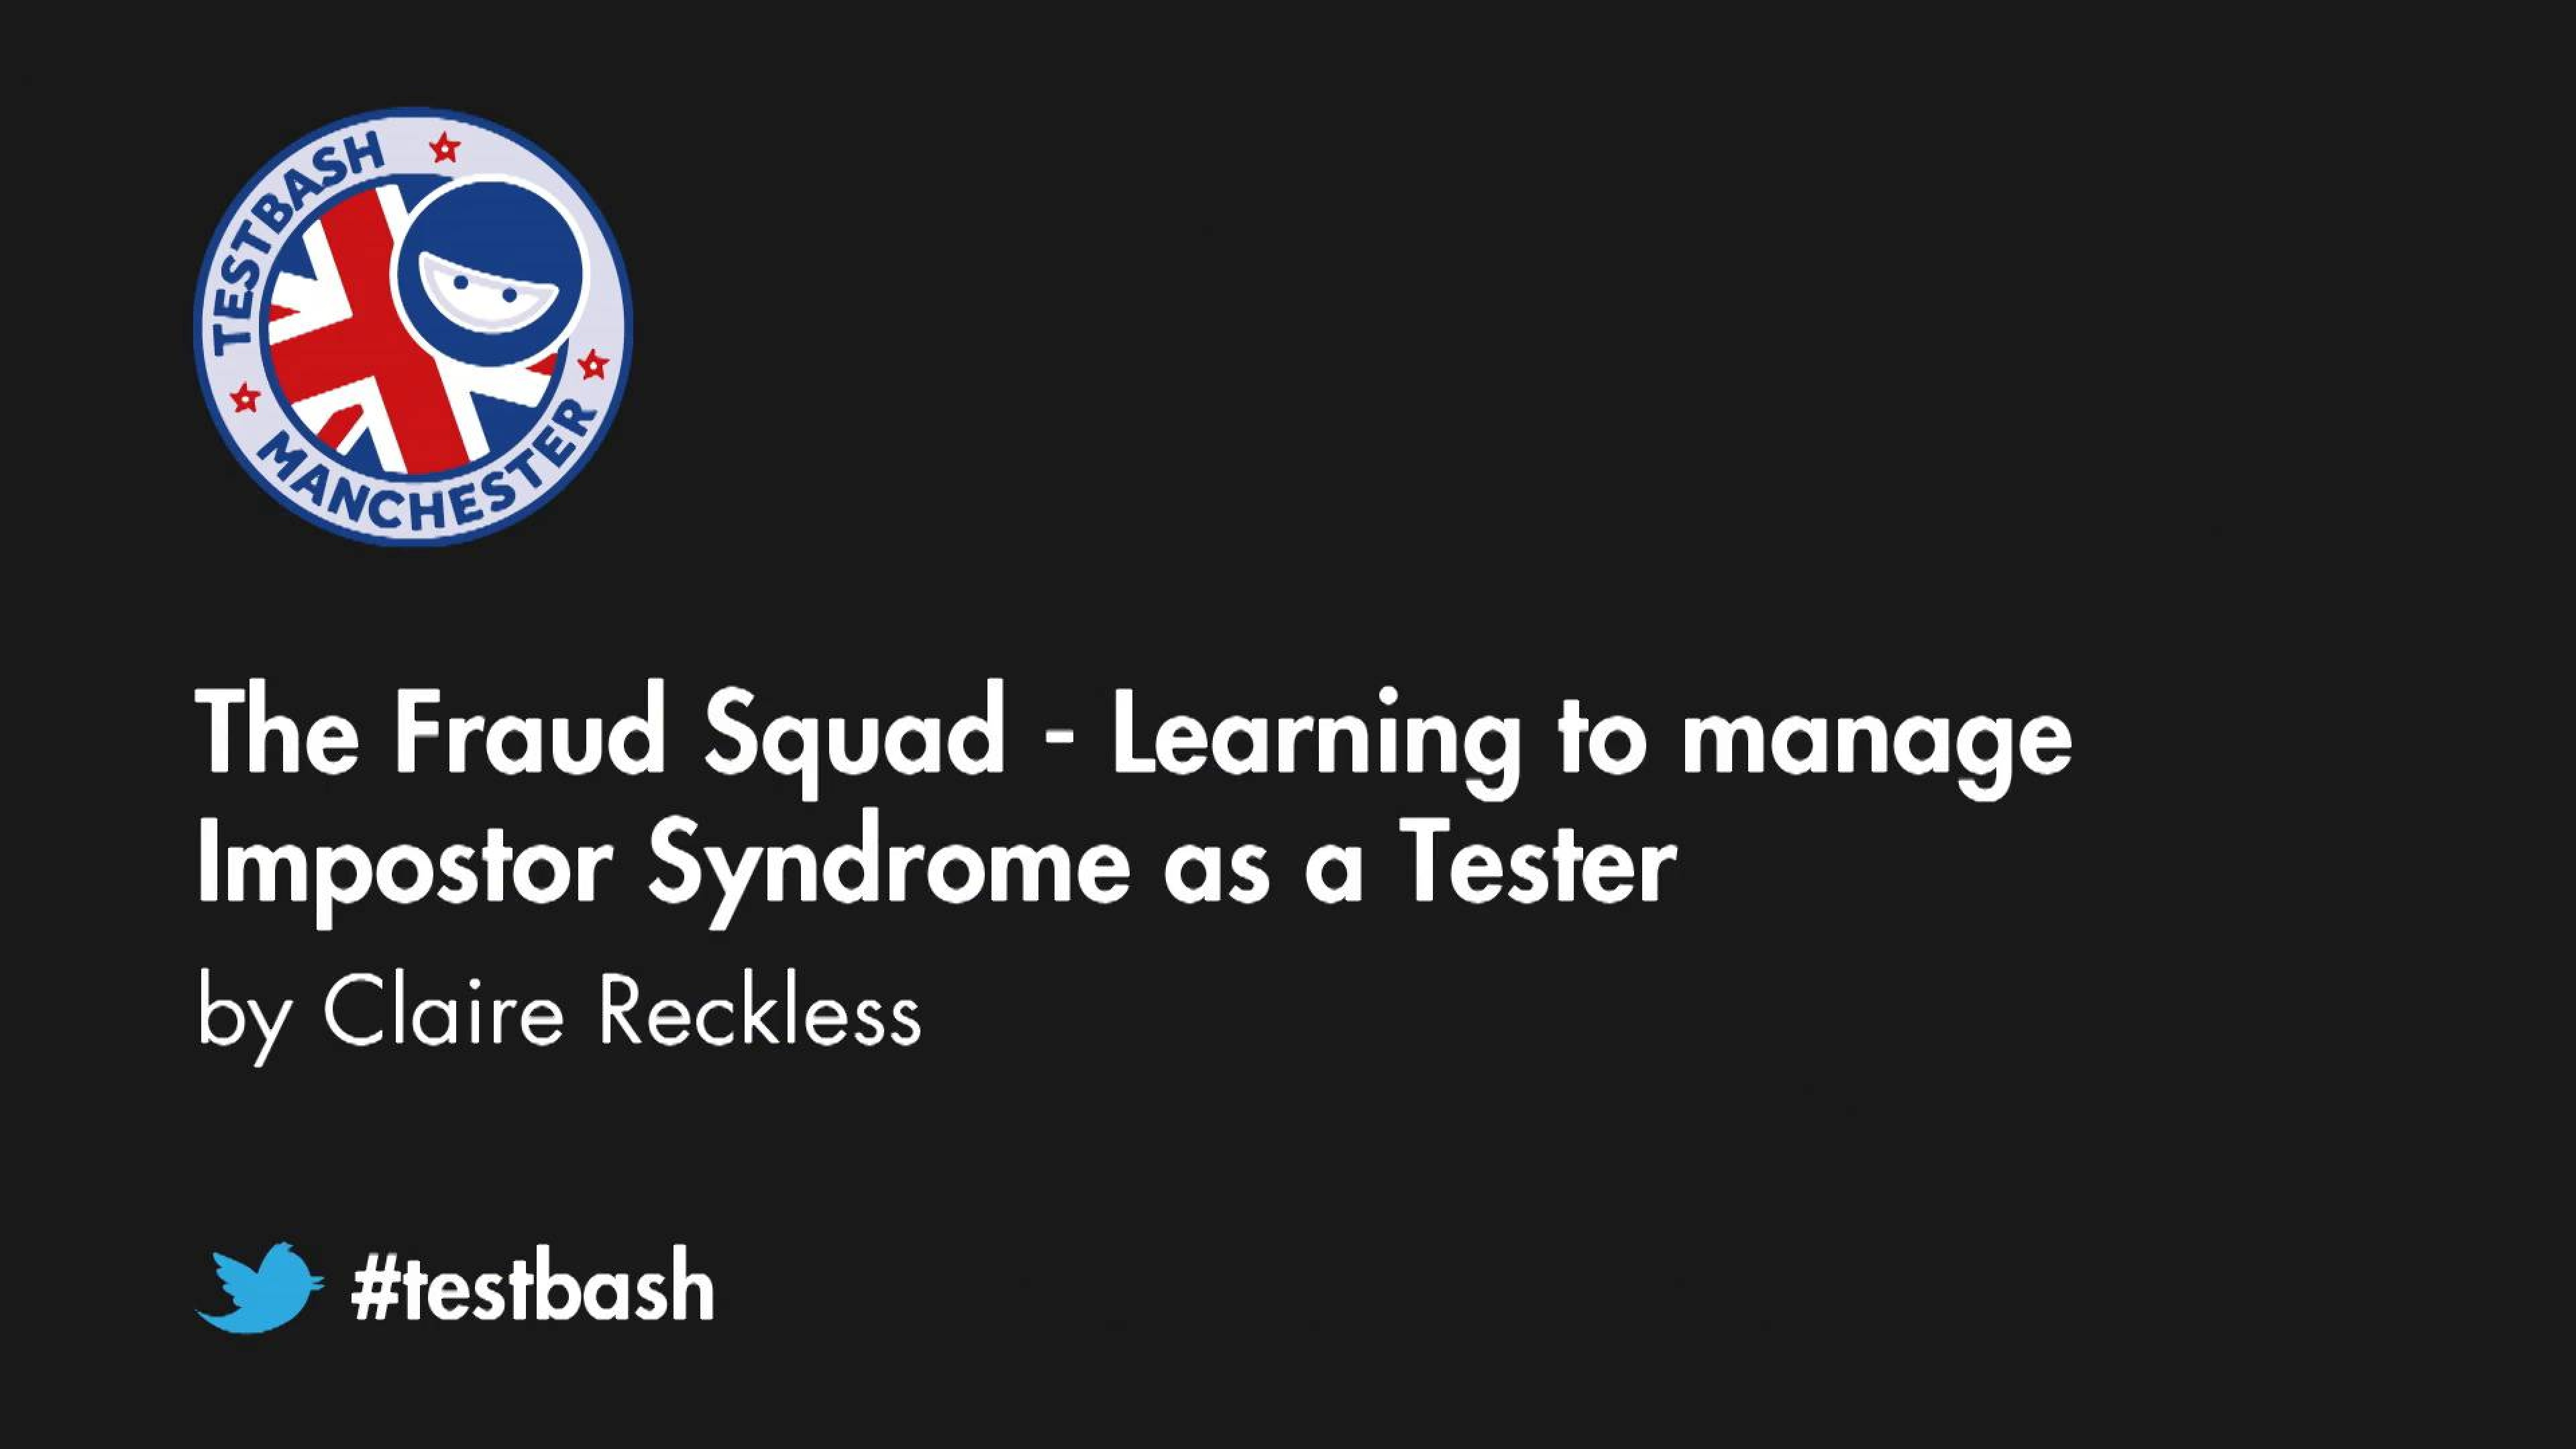 The Fraud Squad - Learning to manage Impostor Syndrome as a Tester - Claire Reckless